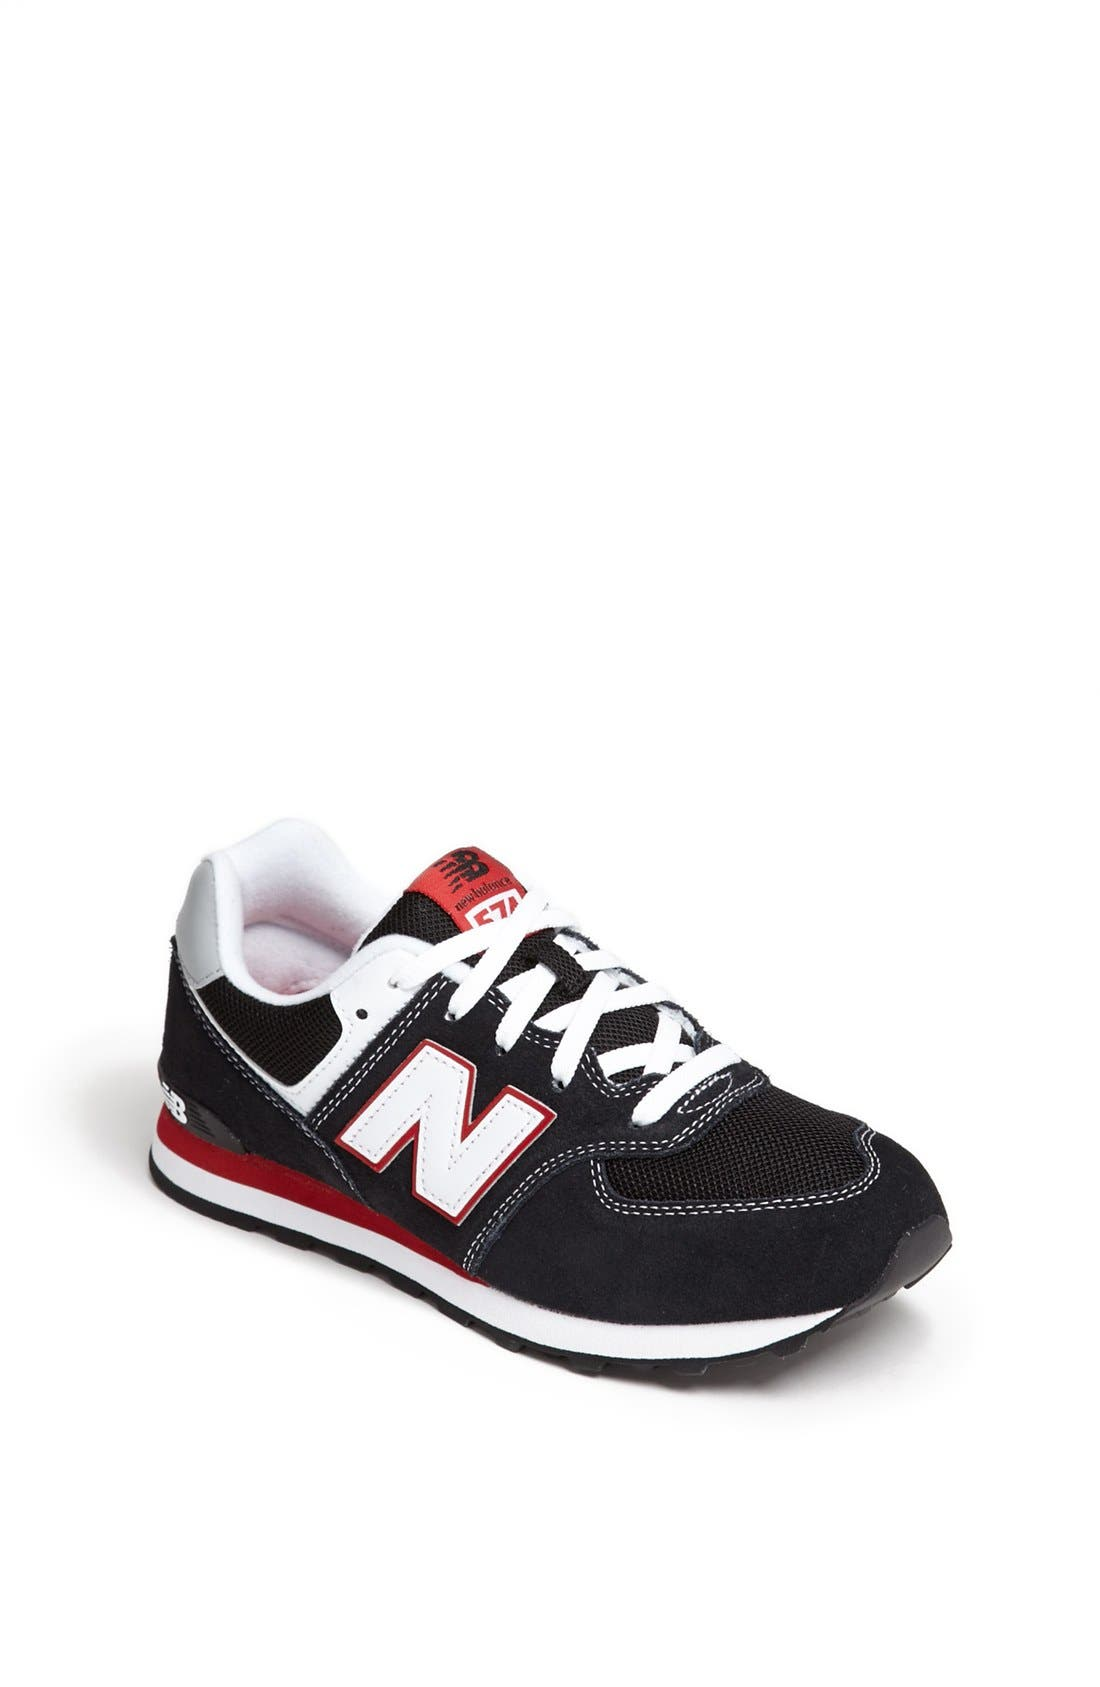 Alternate Image 1 Selected - New Balance '574 Classic' Sneaker (Baby, Walker, Toddler, Little Kid & Big Kid)